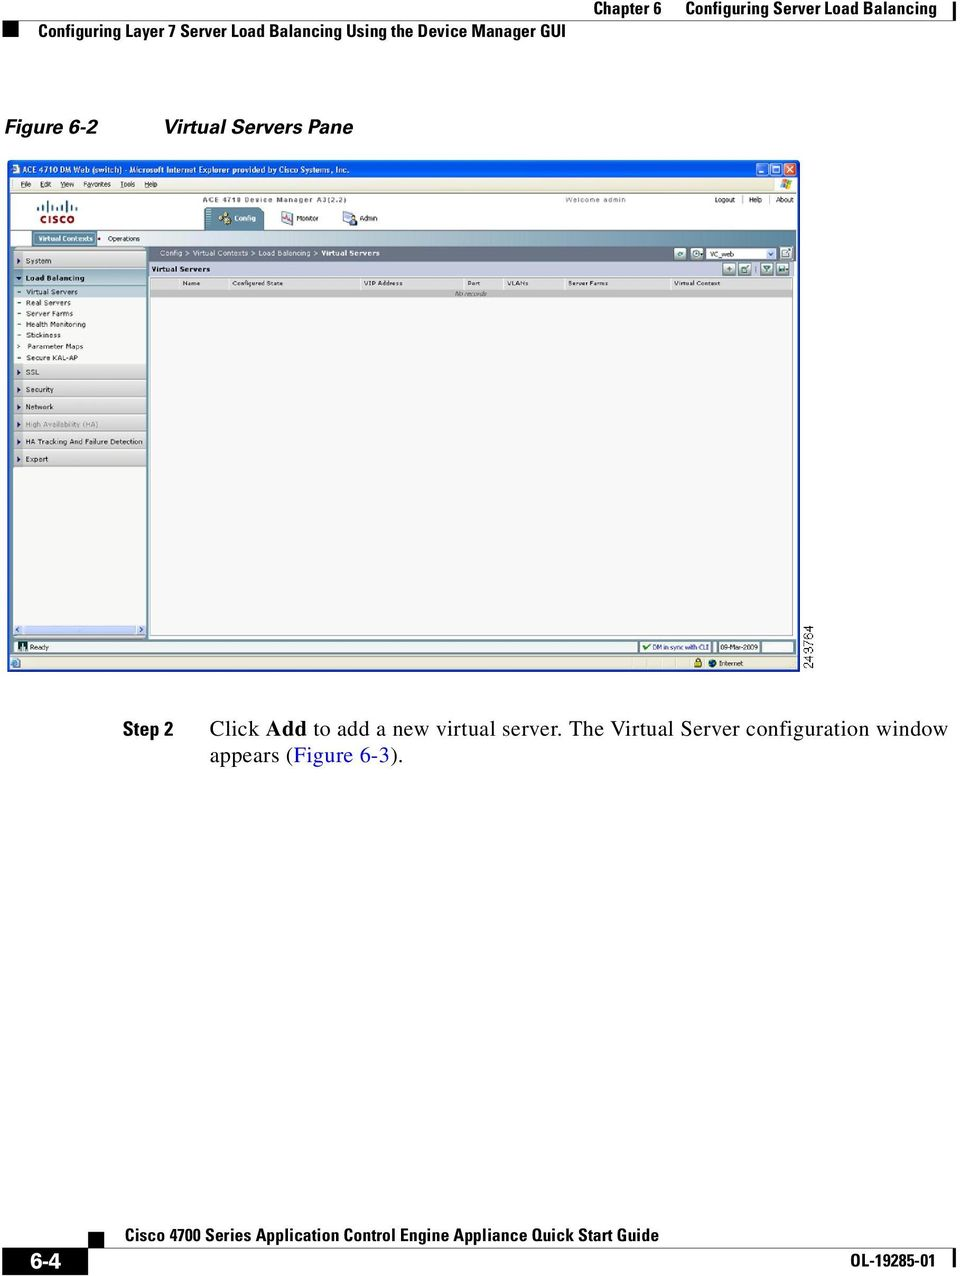 Pane Step 2 Click Add to add a new virtual server.